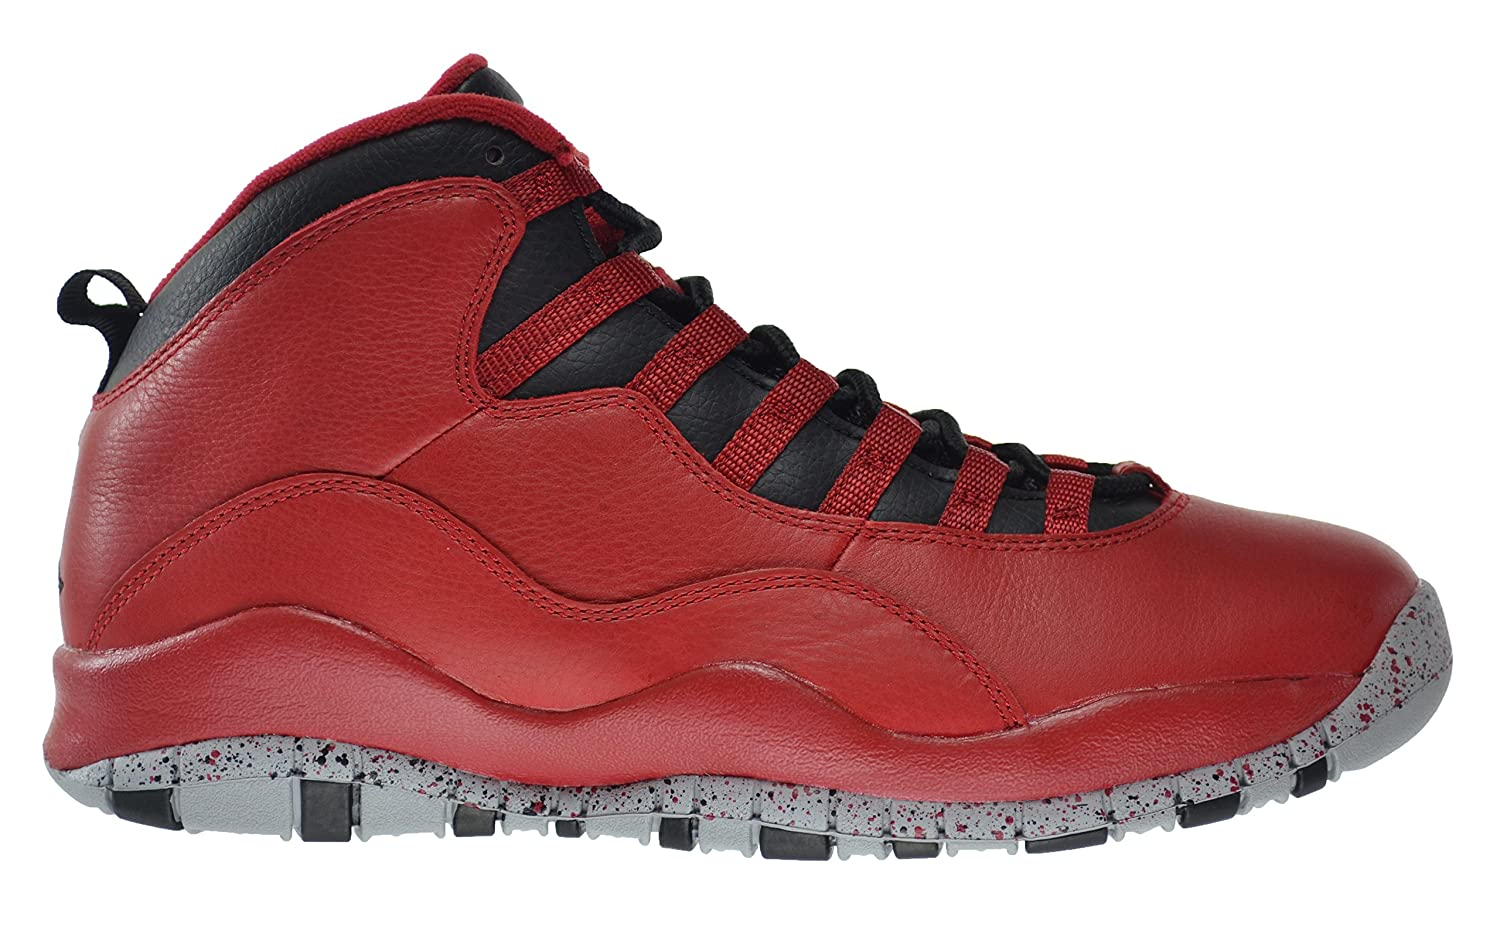 hot sale online 4262e f8e31 Jordan Air 10 Retro 30th Bulls Over Broadway Men's Shoes Gym Red/Black-Wolf  Grey 705178-601